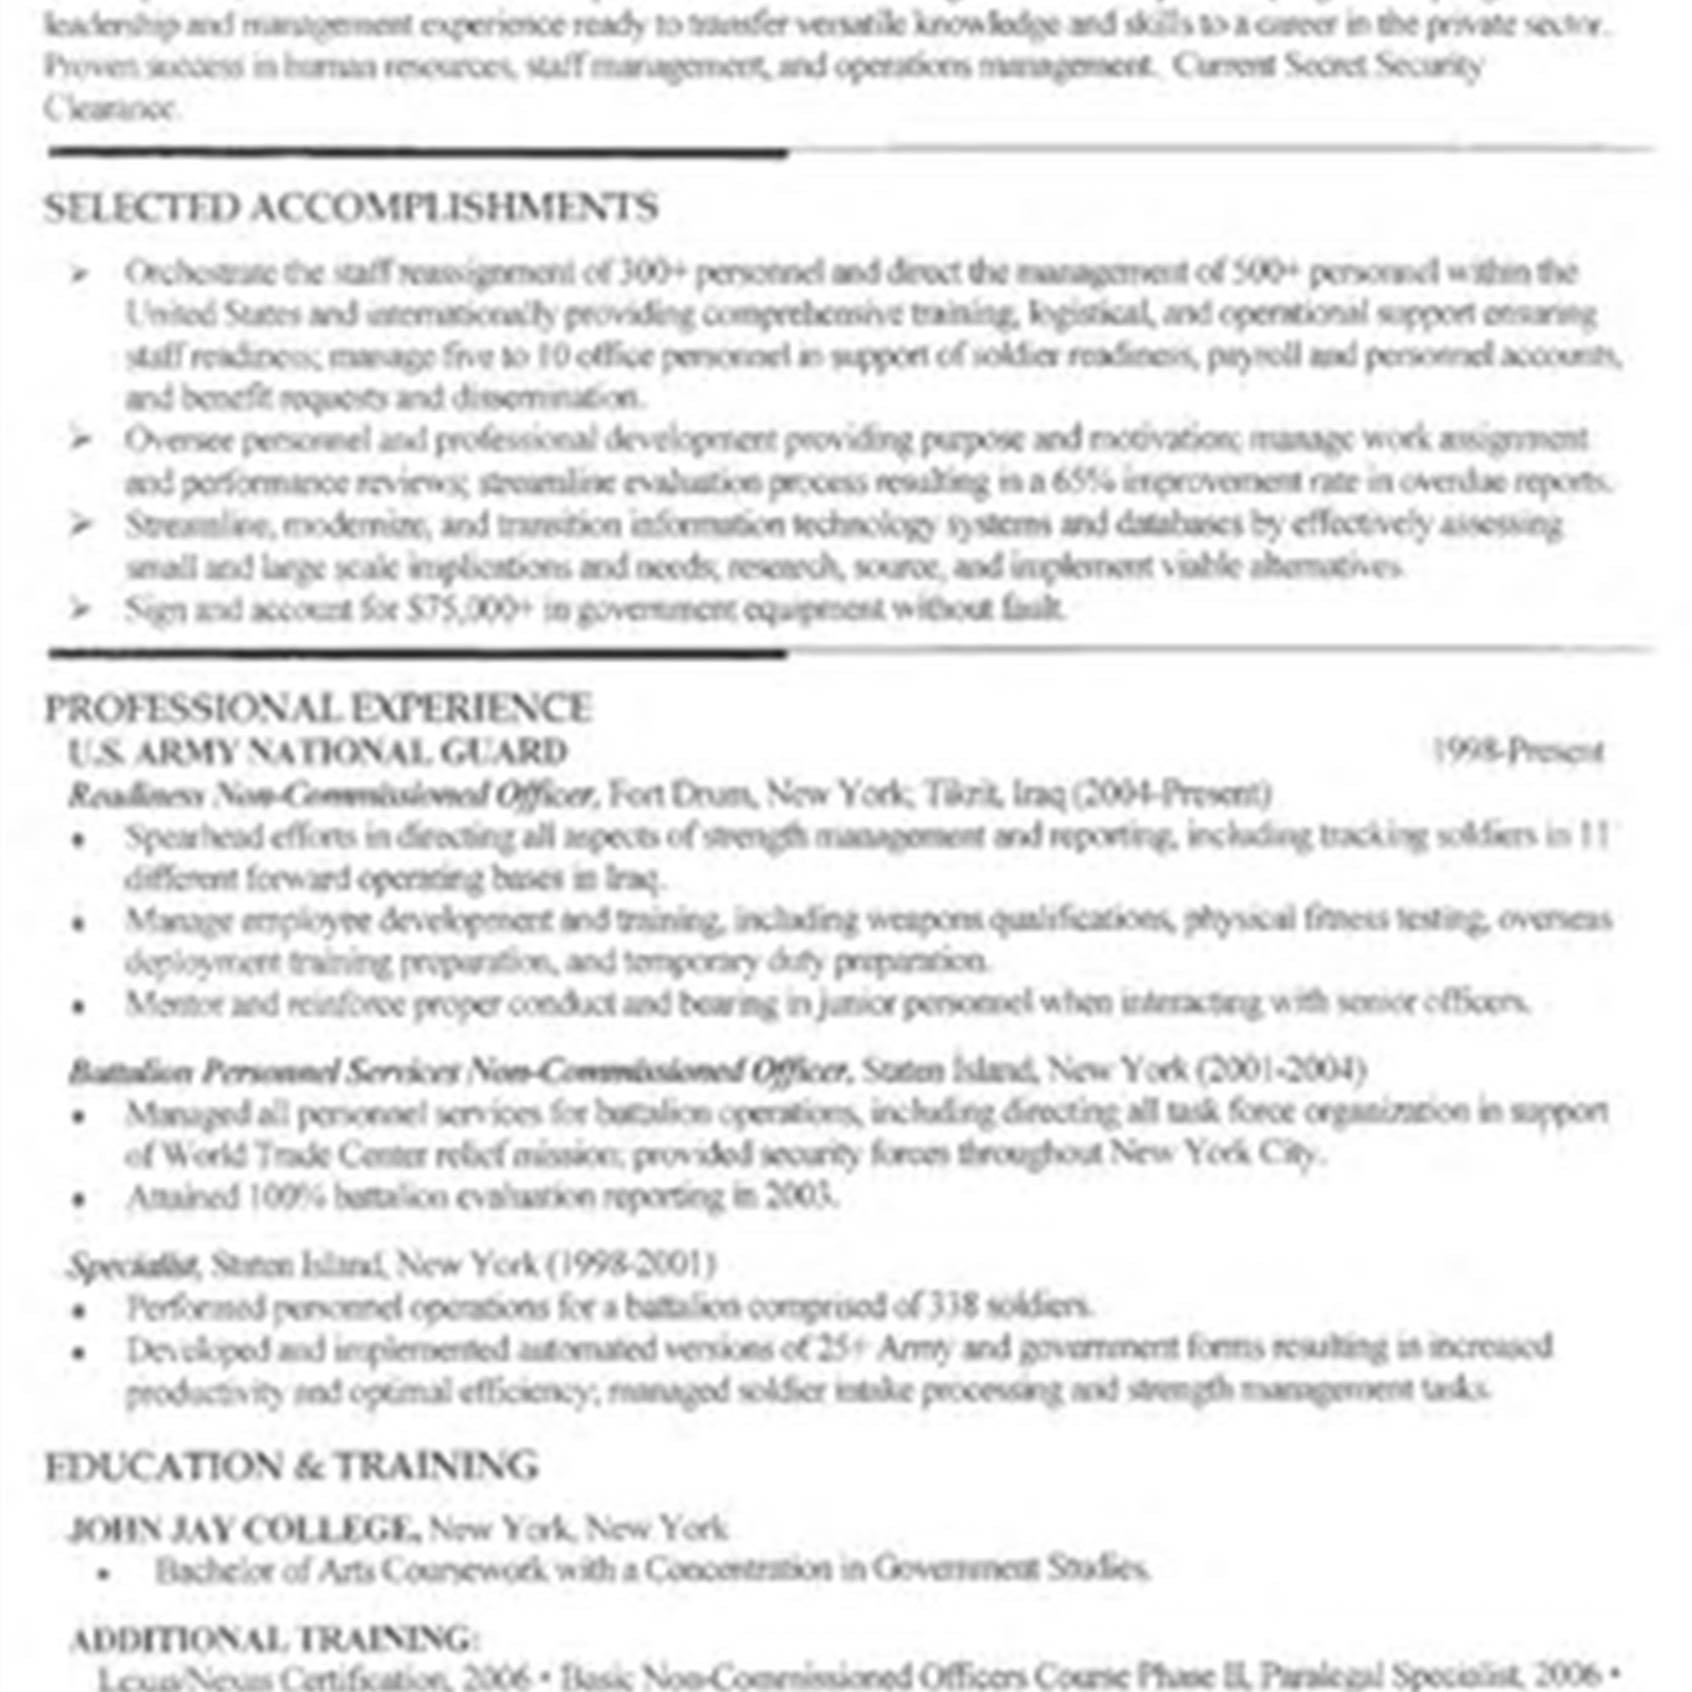 Military Resume Writing - Military Resumes for Civilian Jobs Best Military to Civilian